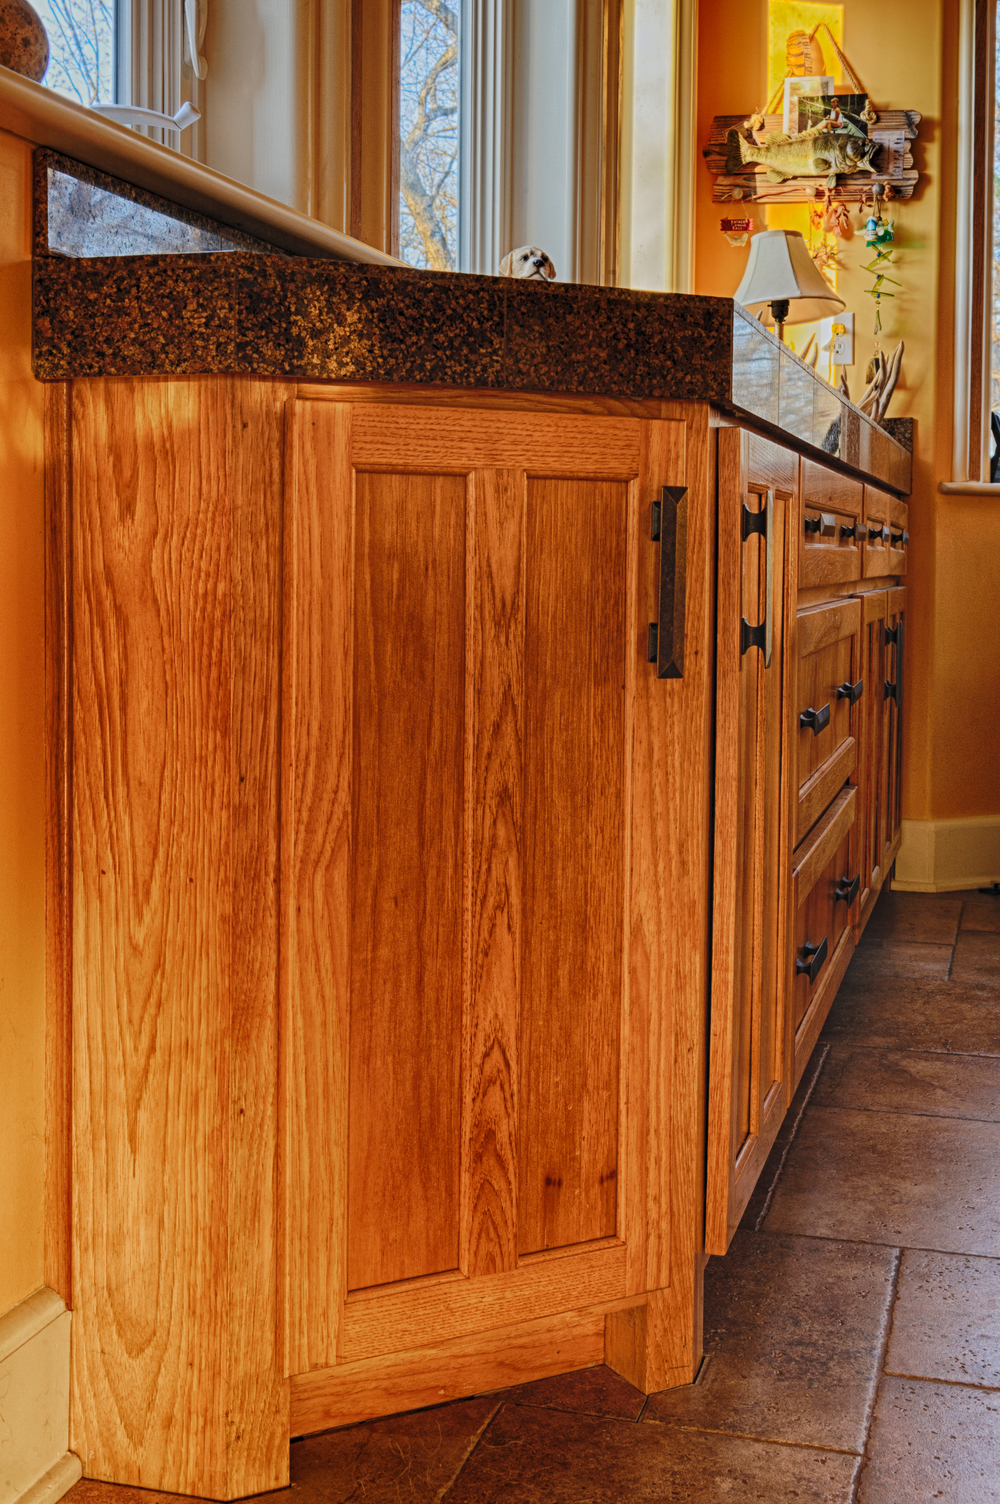 Superieur Kitchen Cabinet Projects In Oak Grove, Mo.u0026nbsp;Designed And Built By Mike